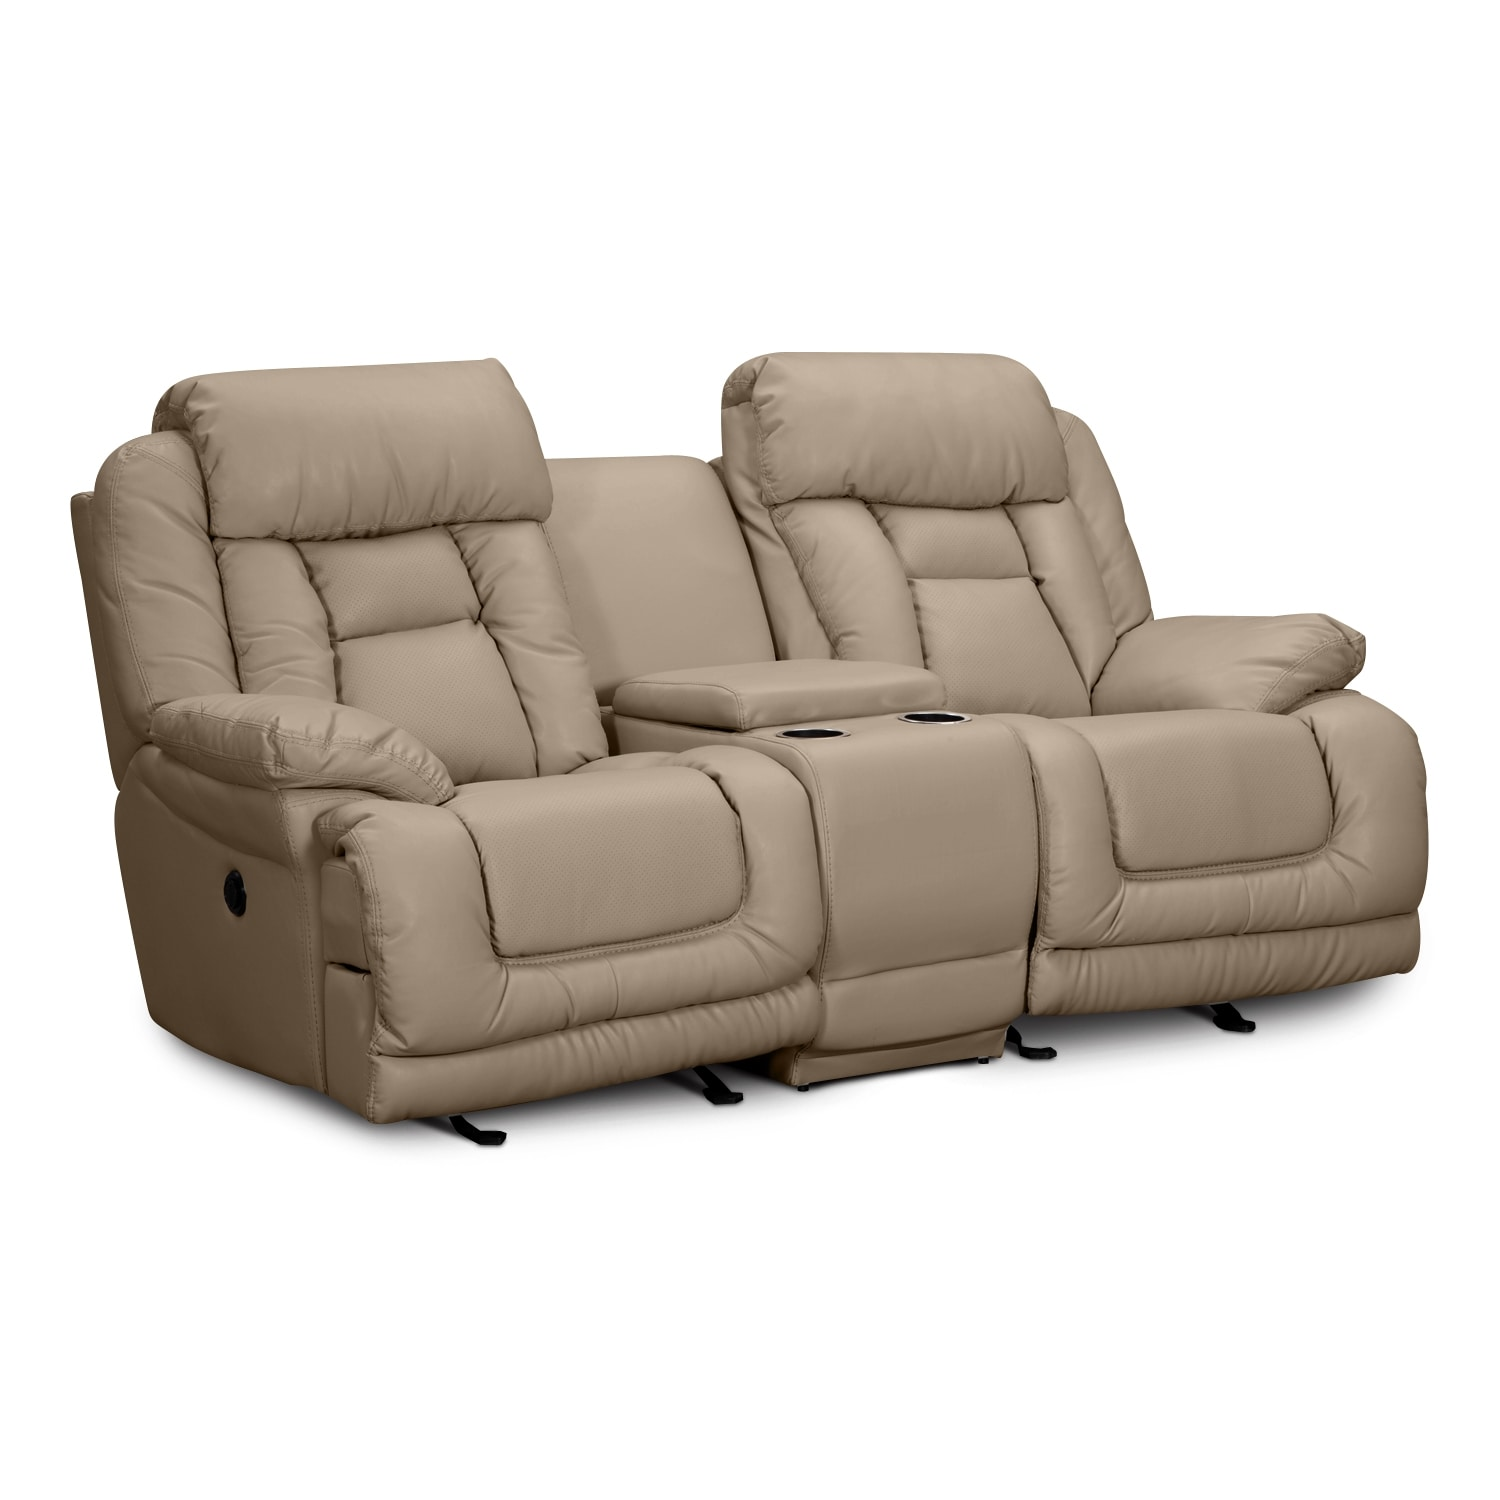 Value city furniture Leather reclining loveseat